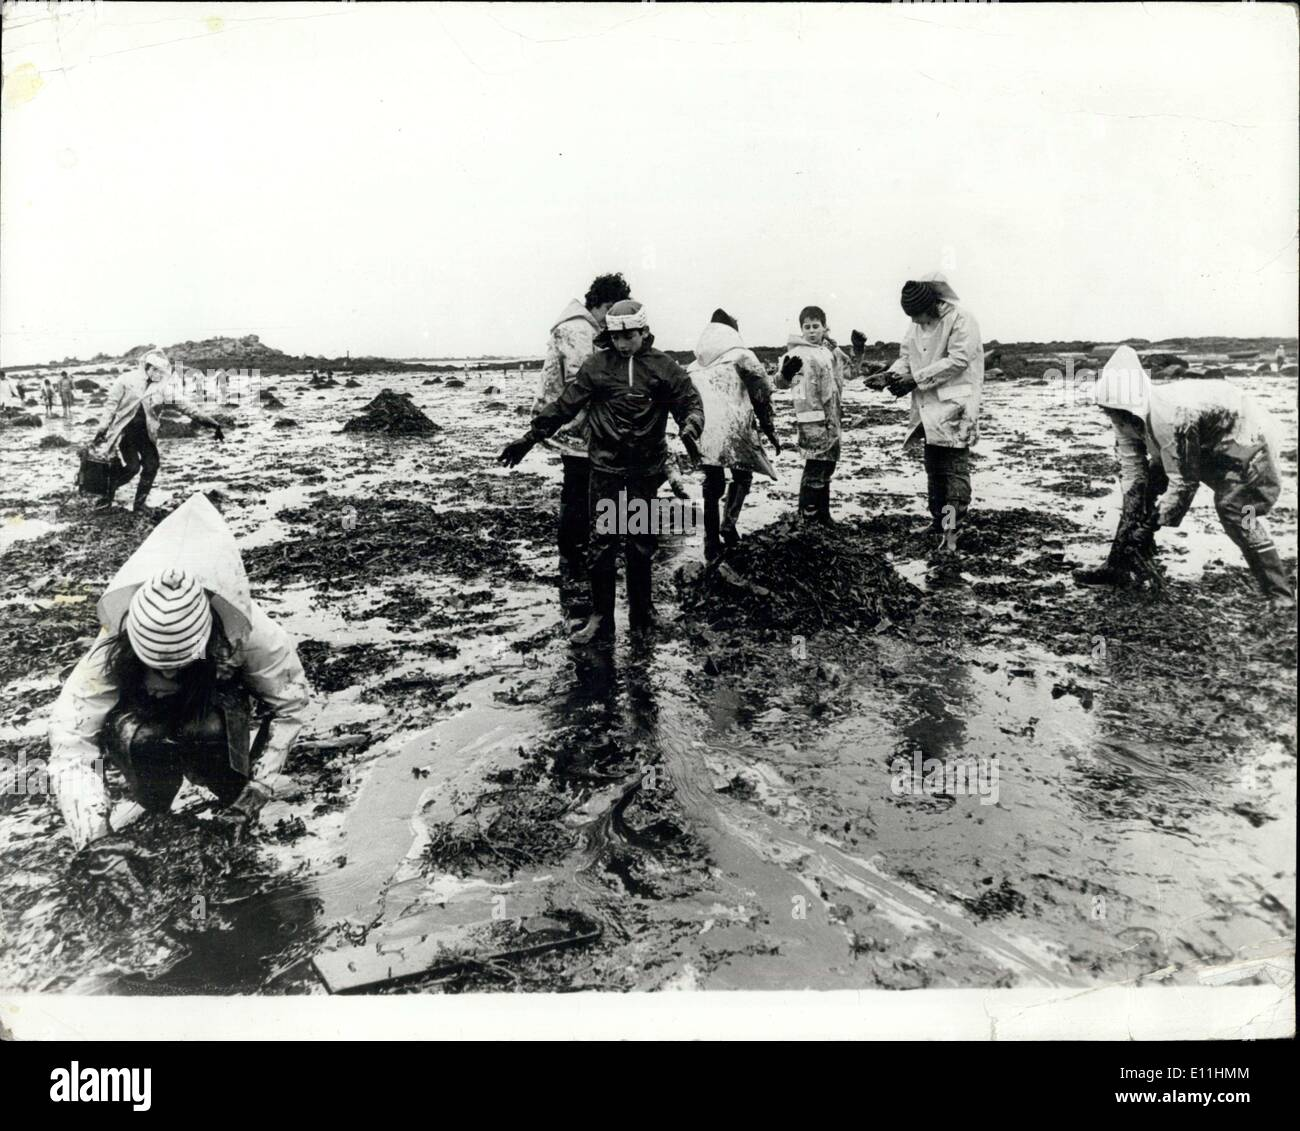 Mar. 31, 1978 - Oil Crisis On The Brittany Beaches: Disaster To Bird And Marine Life Has Already Arrived On The French Coastline, As A Result Of the Oil Discharged By The Anoco Cadiz Oil Tanker. Efforts Are Being Made By The Local Police, Aided By Volunteer From All Over France, With Schoolchildren On Holiday Travelling From Parts To Help Clear The Beaches. Photo shows Young Volunteers Helping To Clear The Beaches Of Oil On The Brittany Coast. - Stock Image